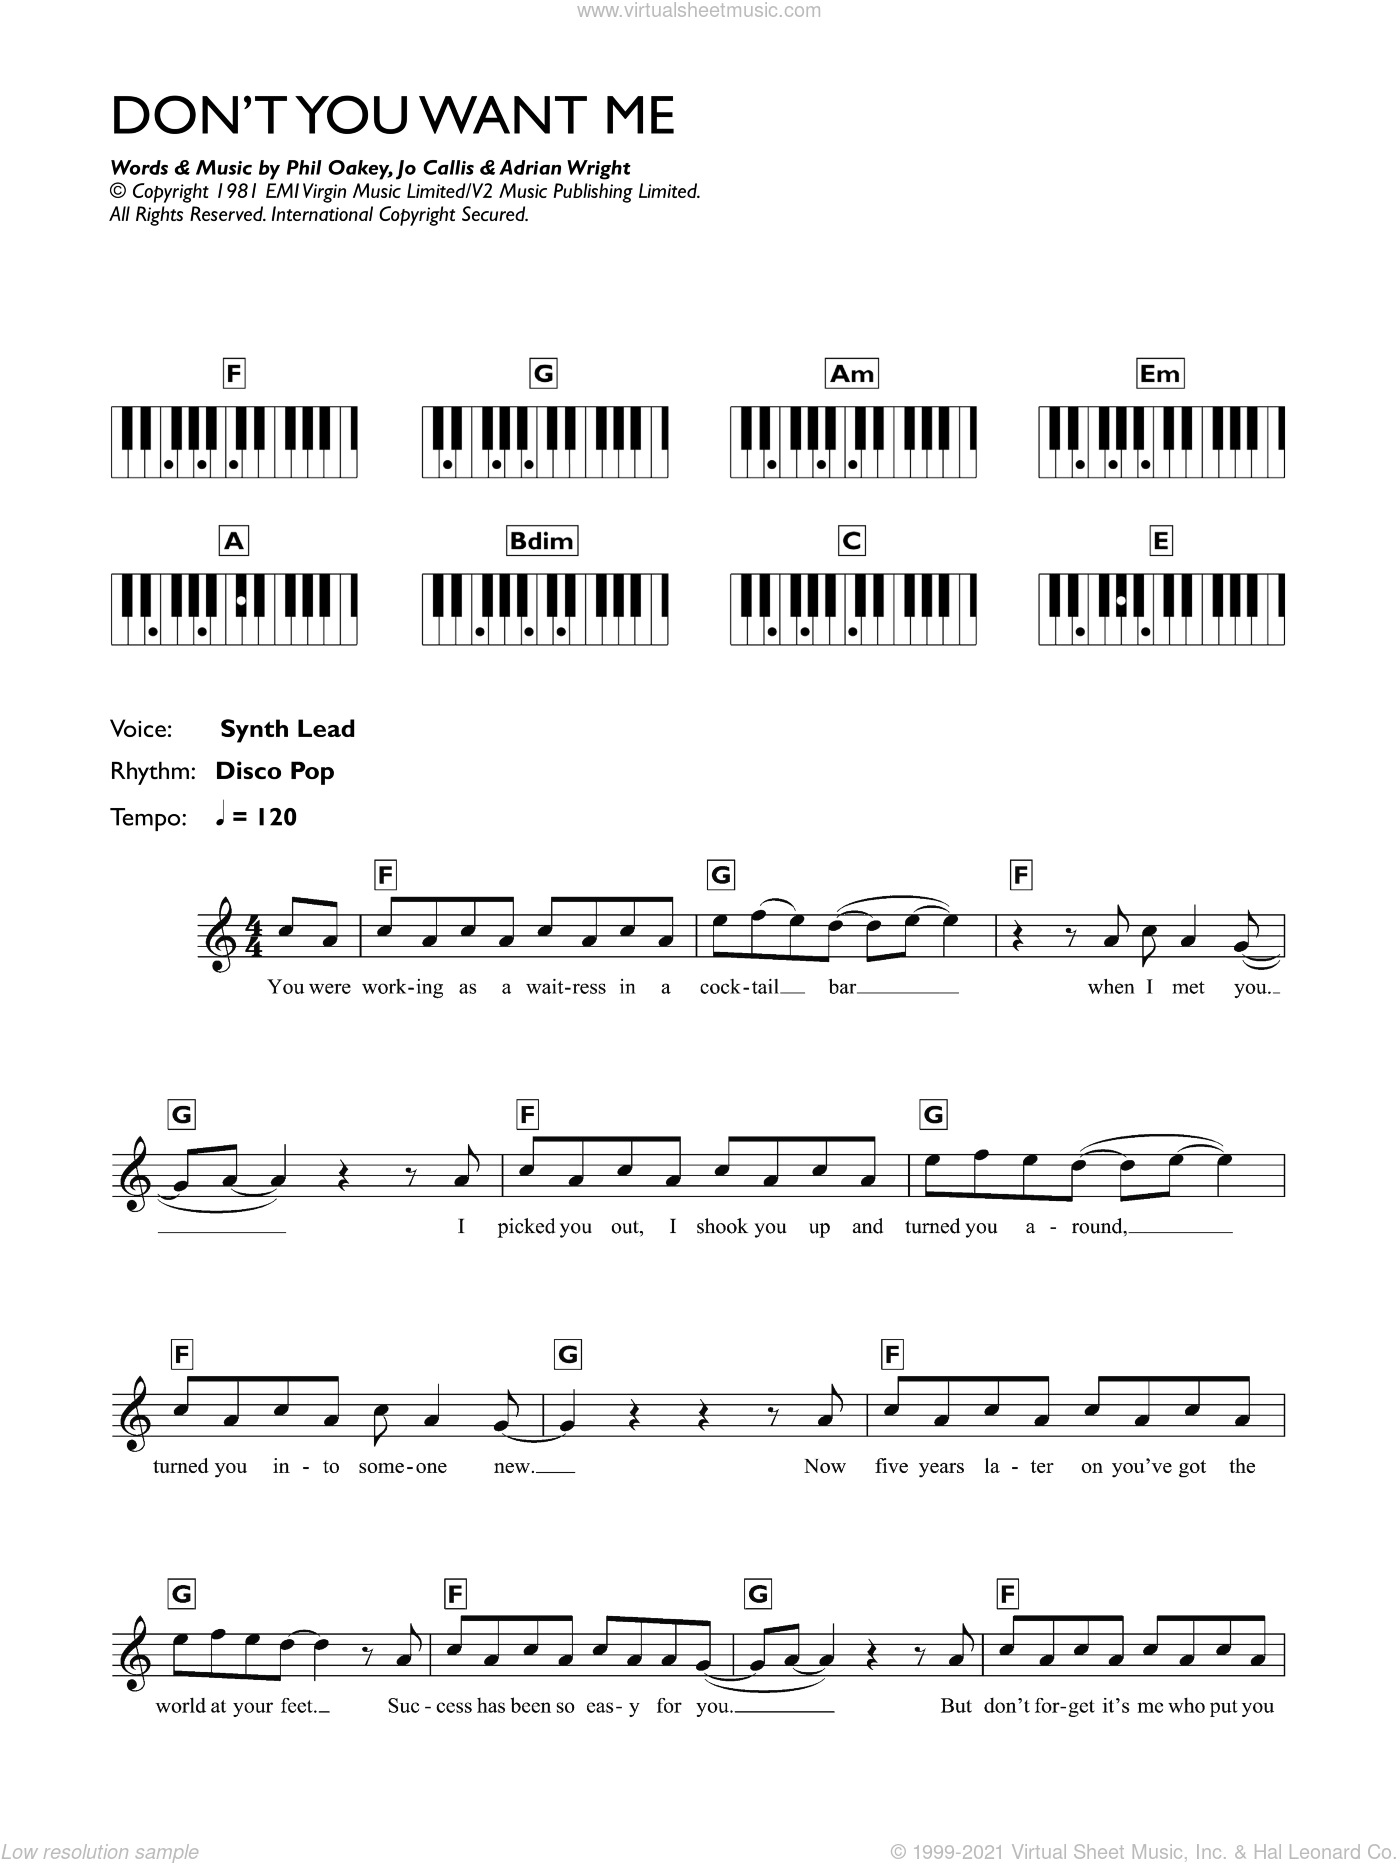 Don't You Want Me sheet music for piano solo (chords, lyrics, melody) by The Human League, Adrian Wright, Jo Callis and Phil Oakey, intermediate piano (chords, lyrics, melody)